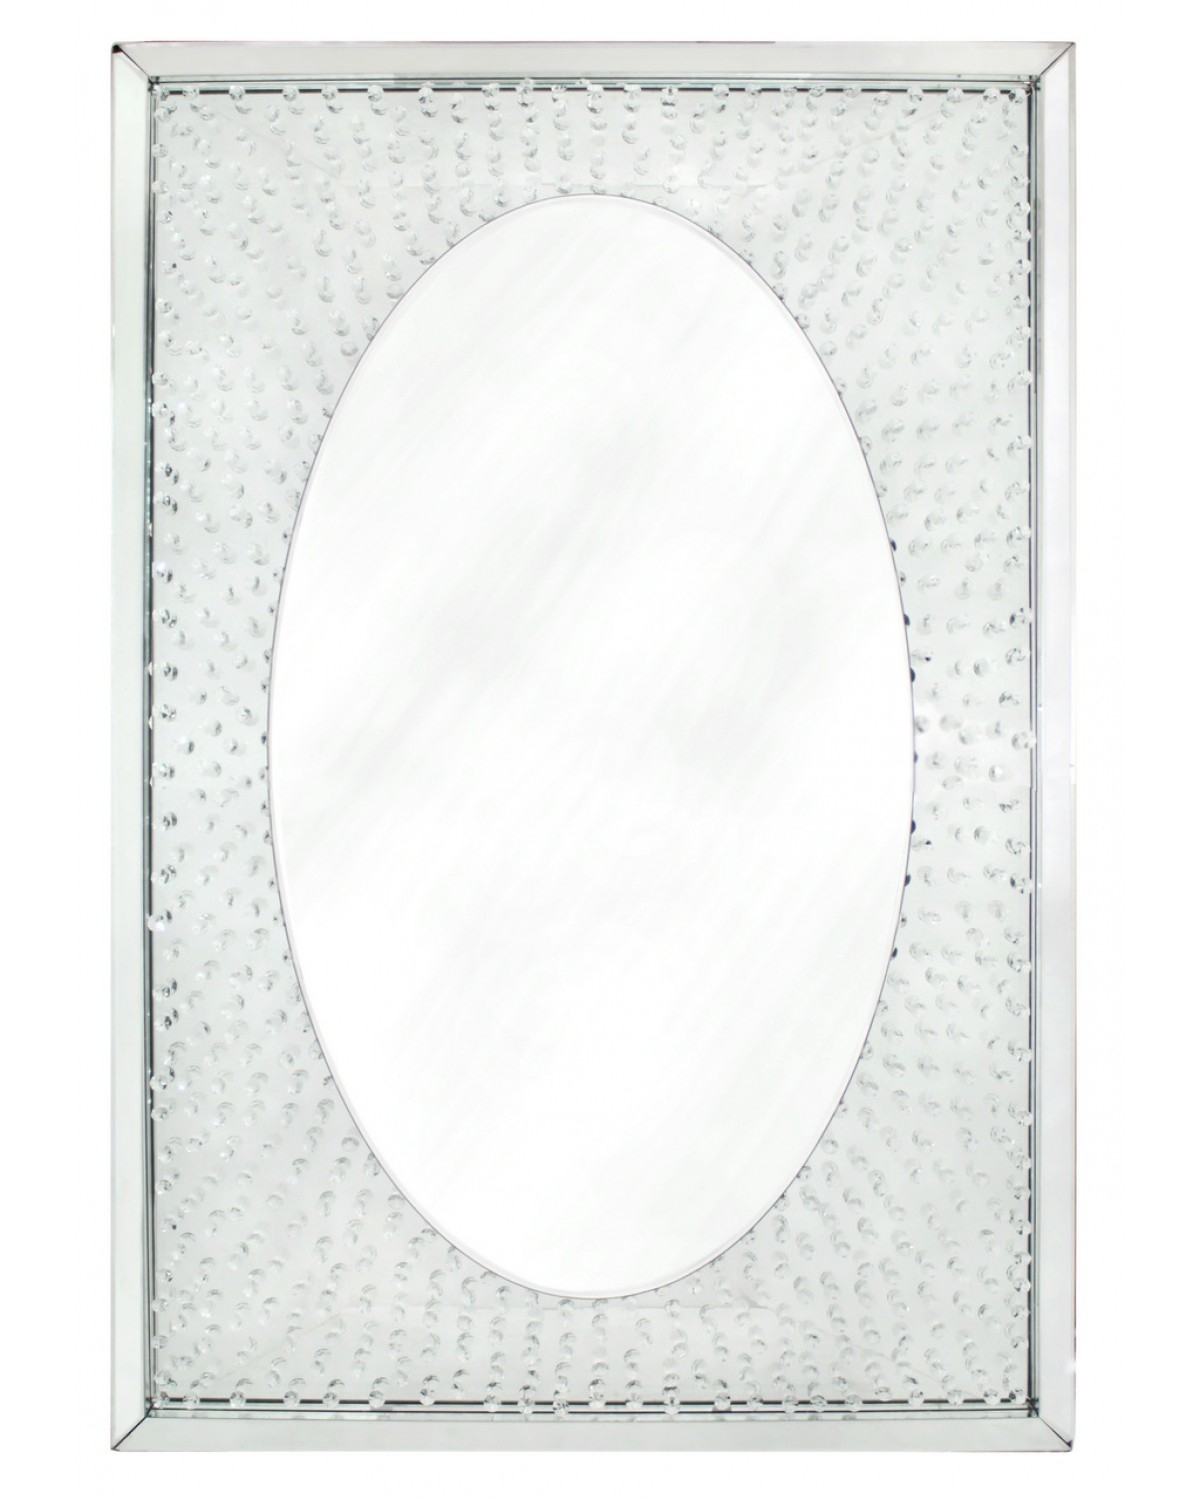 Contemporary Mirrors Framesartmirrors Cimc Home With Wall Mirror With Crystals (Image 4 of 15)